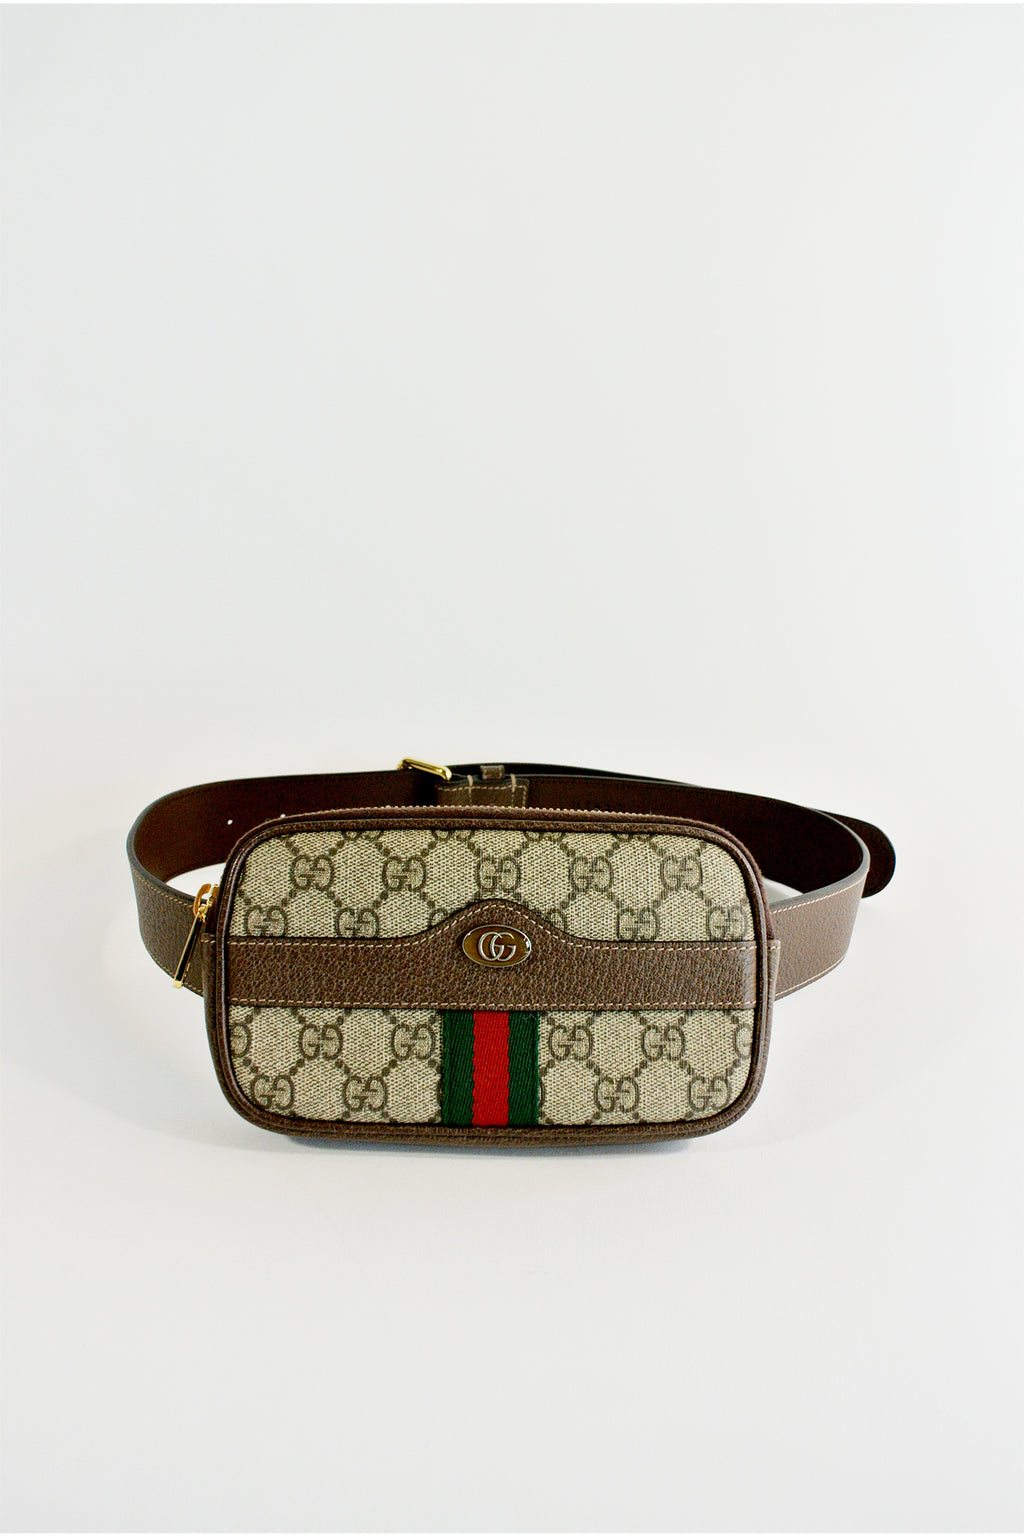 Gucci Brown GG Supreme Ophidia iPhone Case Belt Bag